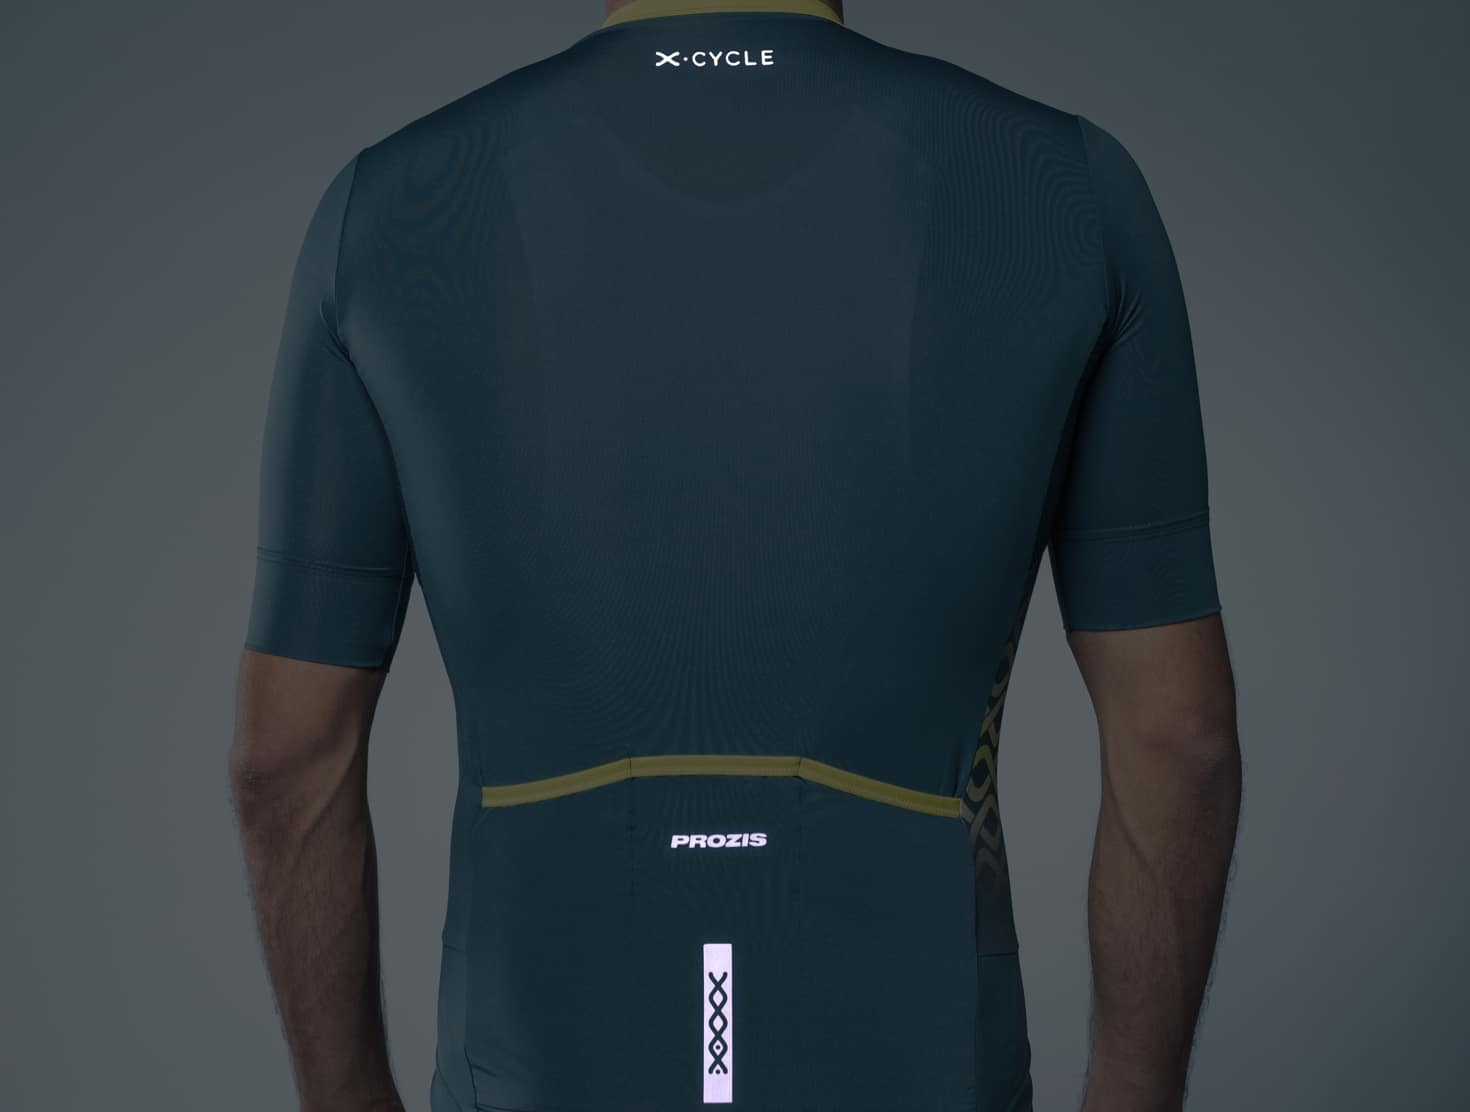 X-Cycle SS Jersey - Pro